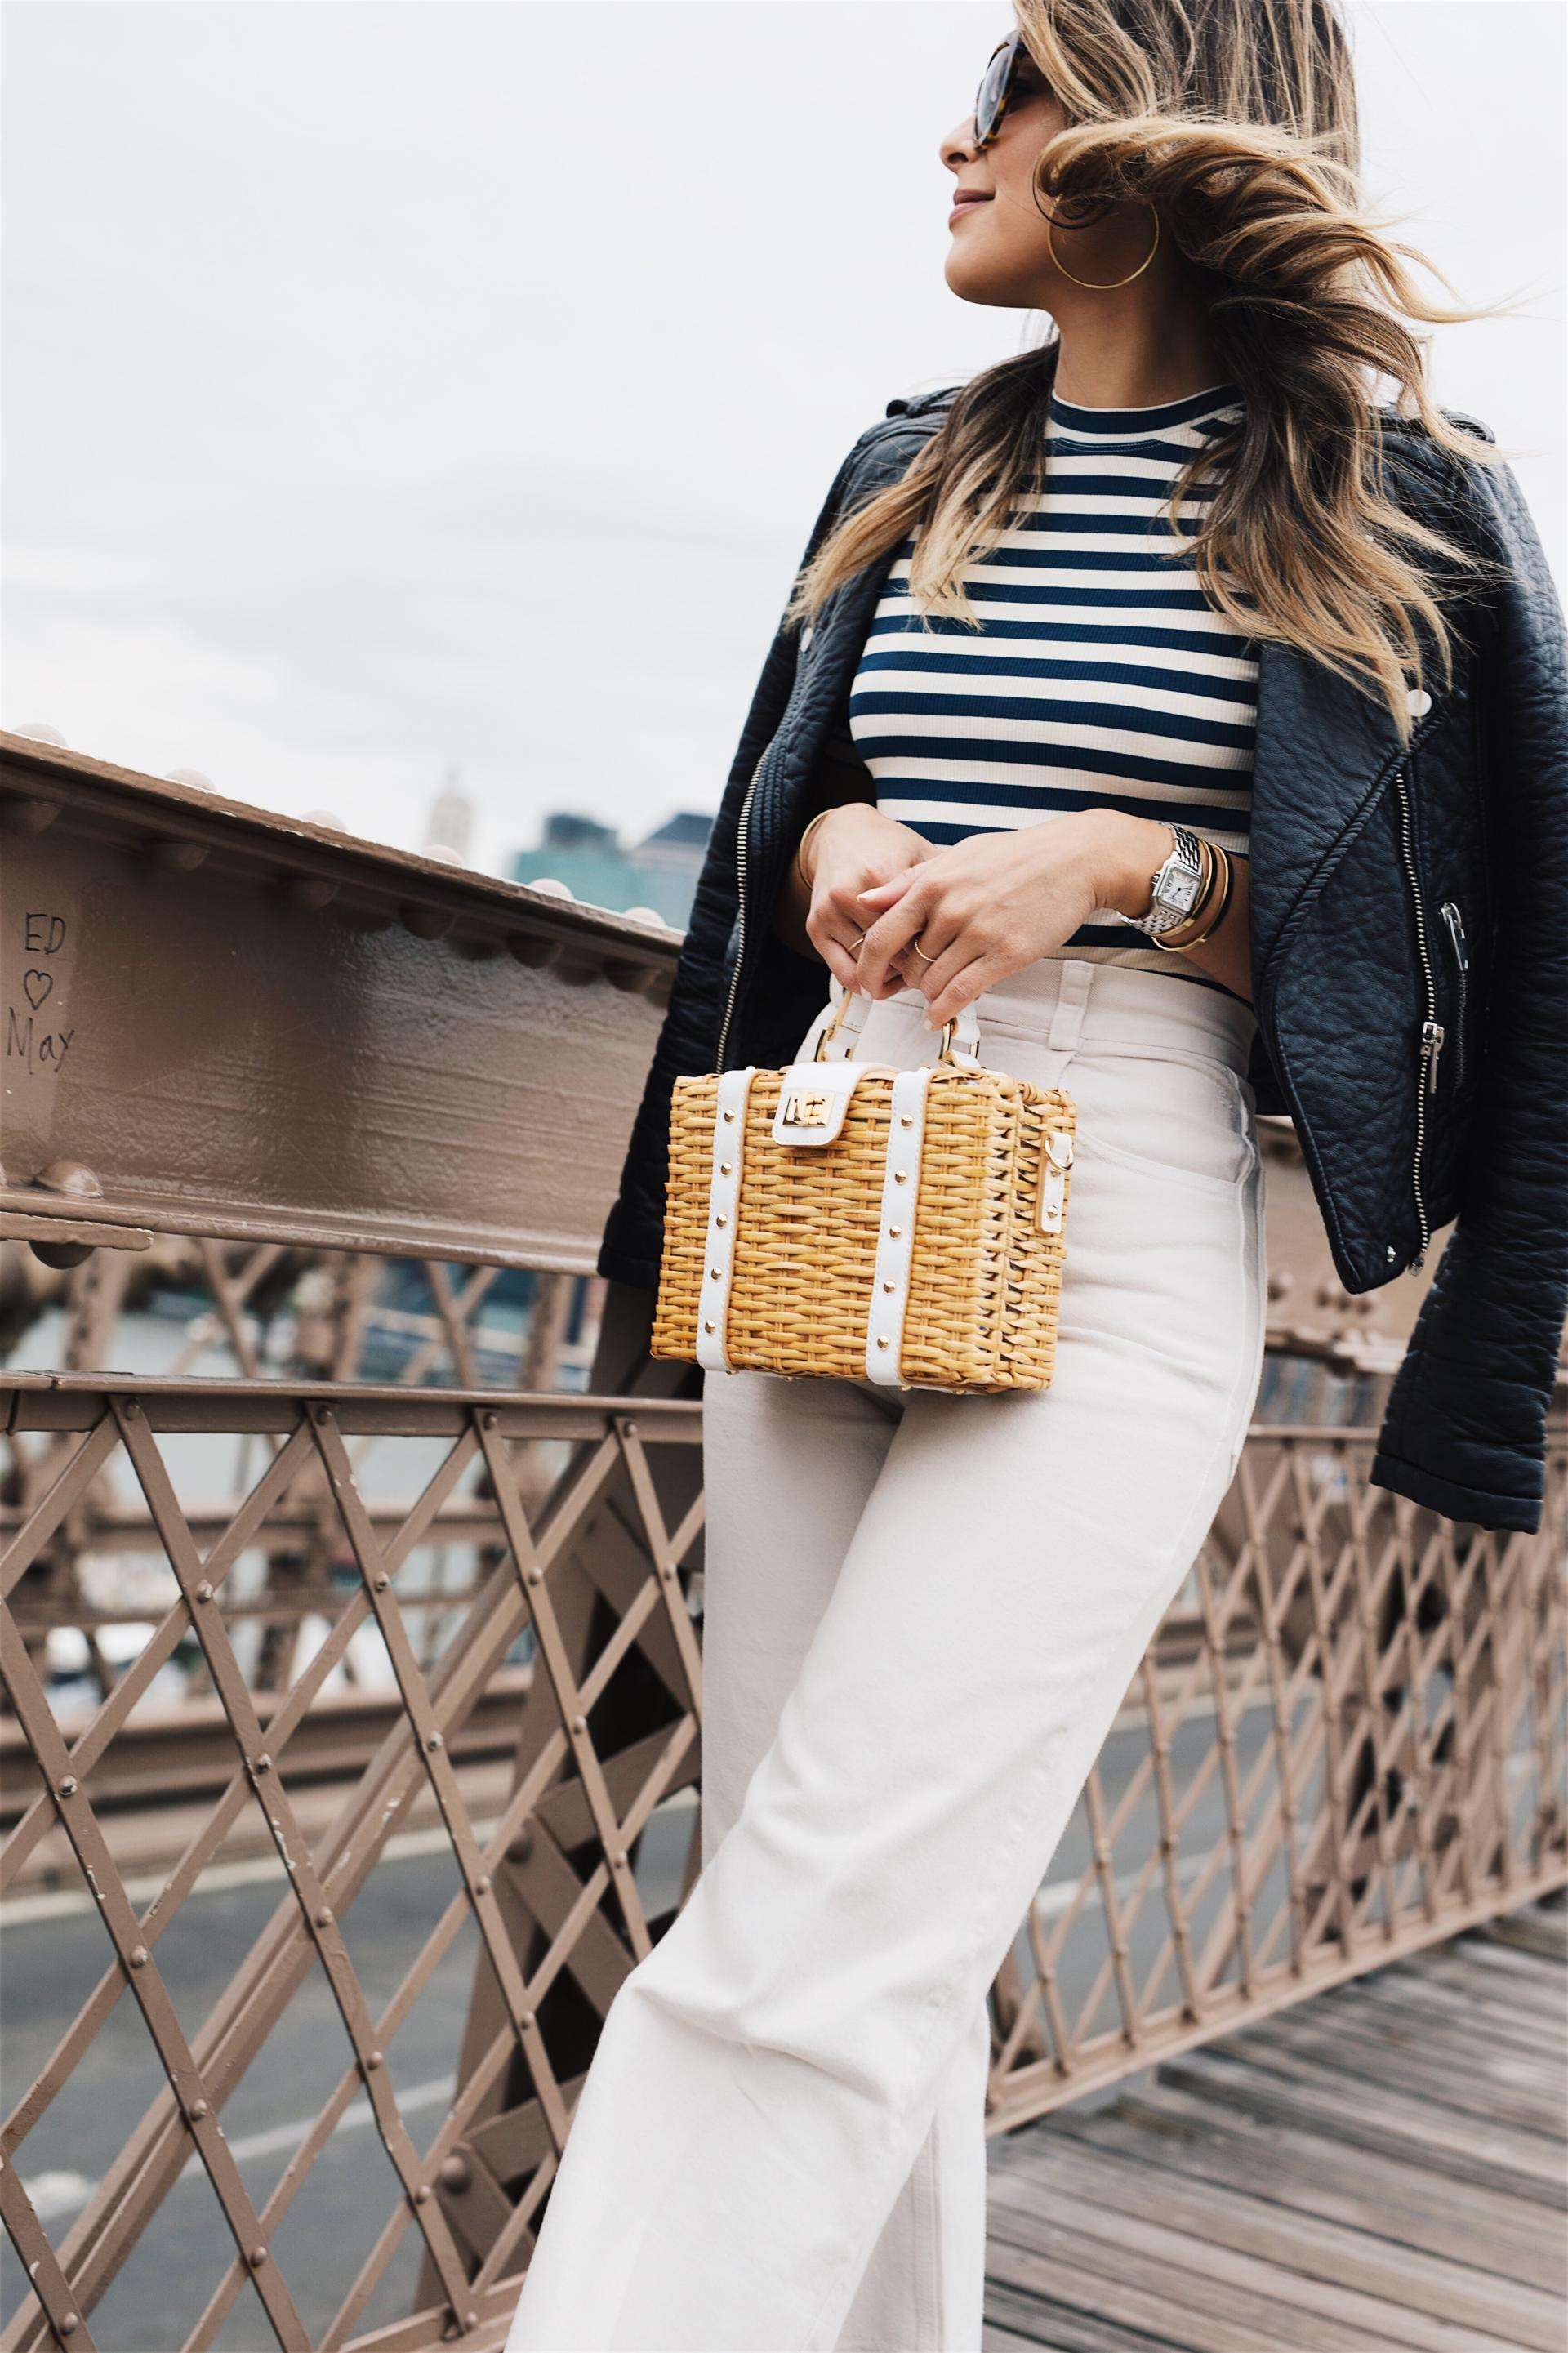 How to Style Denim in June // White Jeans, Striped Top, Basket Bag, Leather Jacket, Black Mules // The Girl From Panama